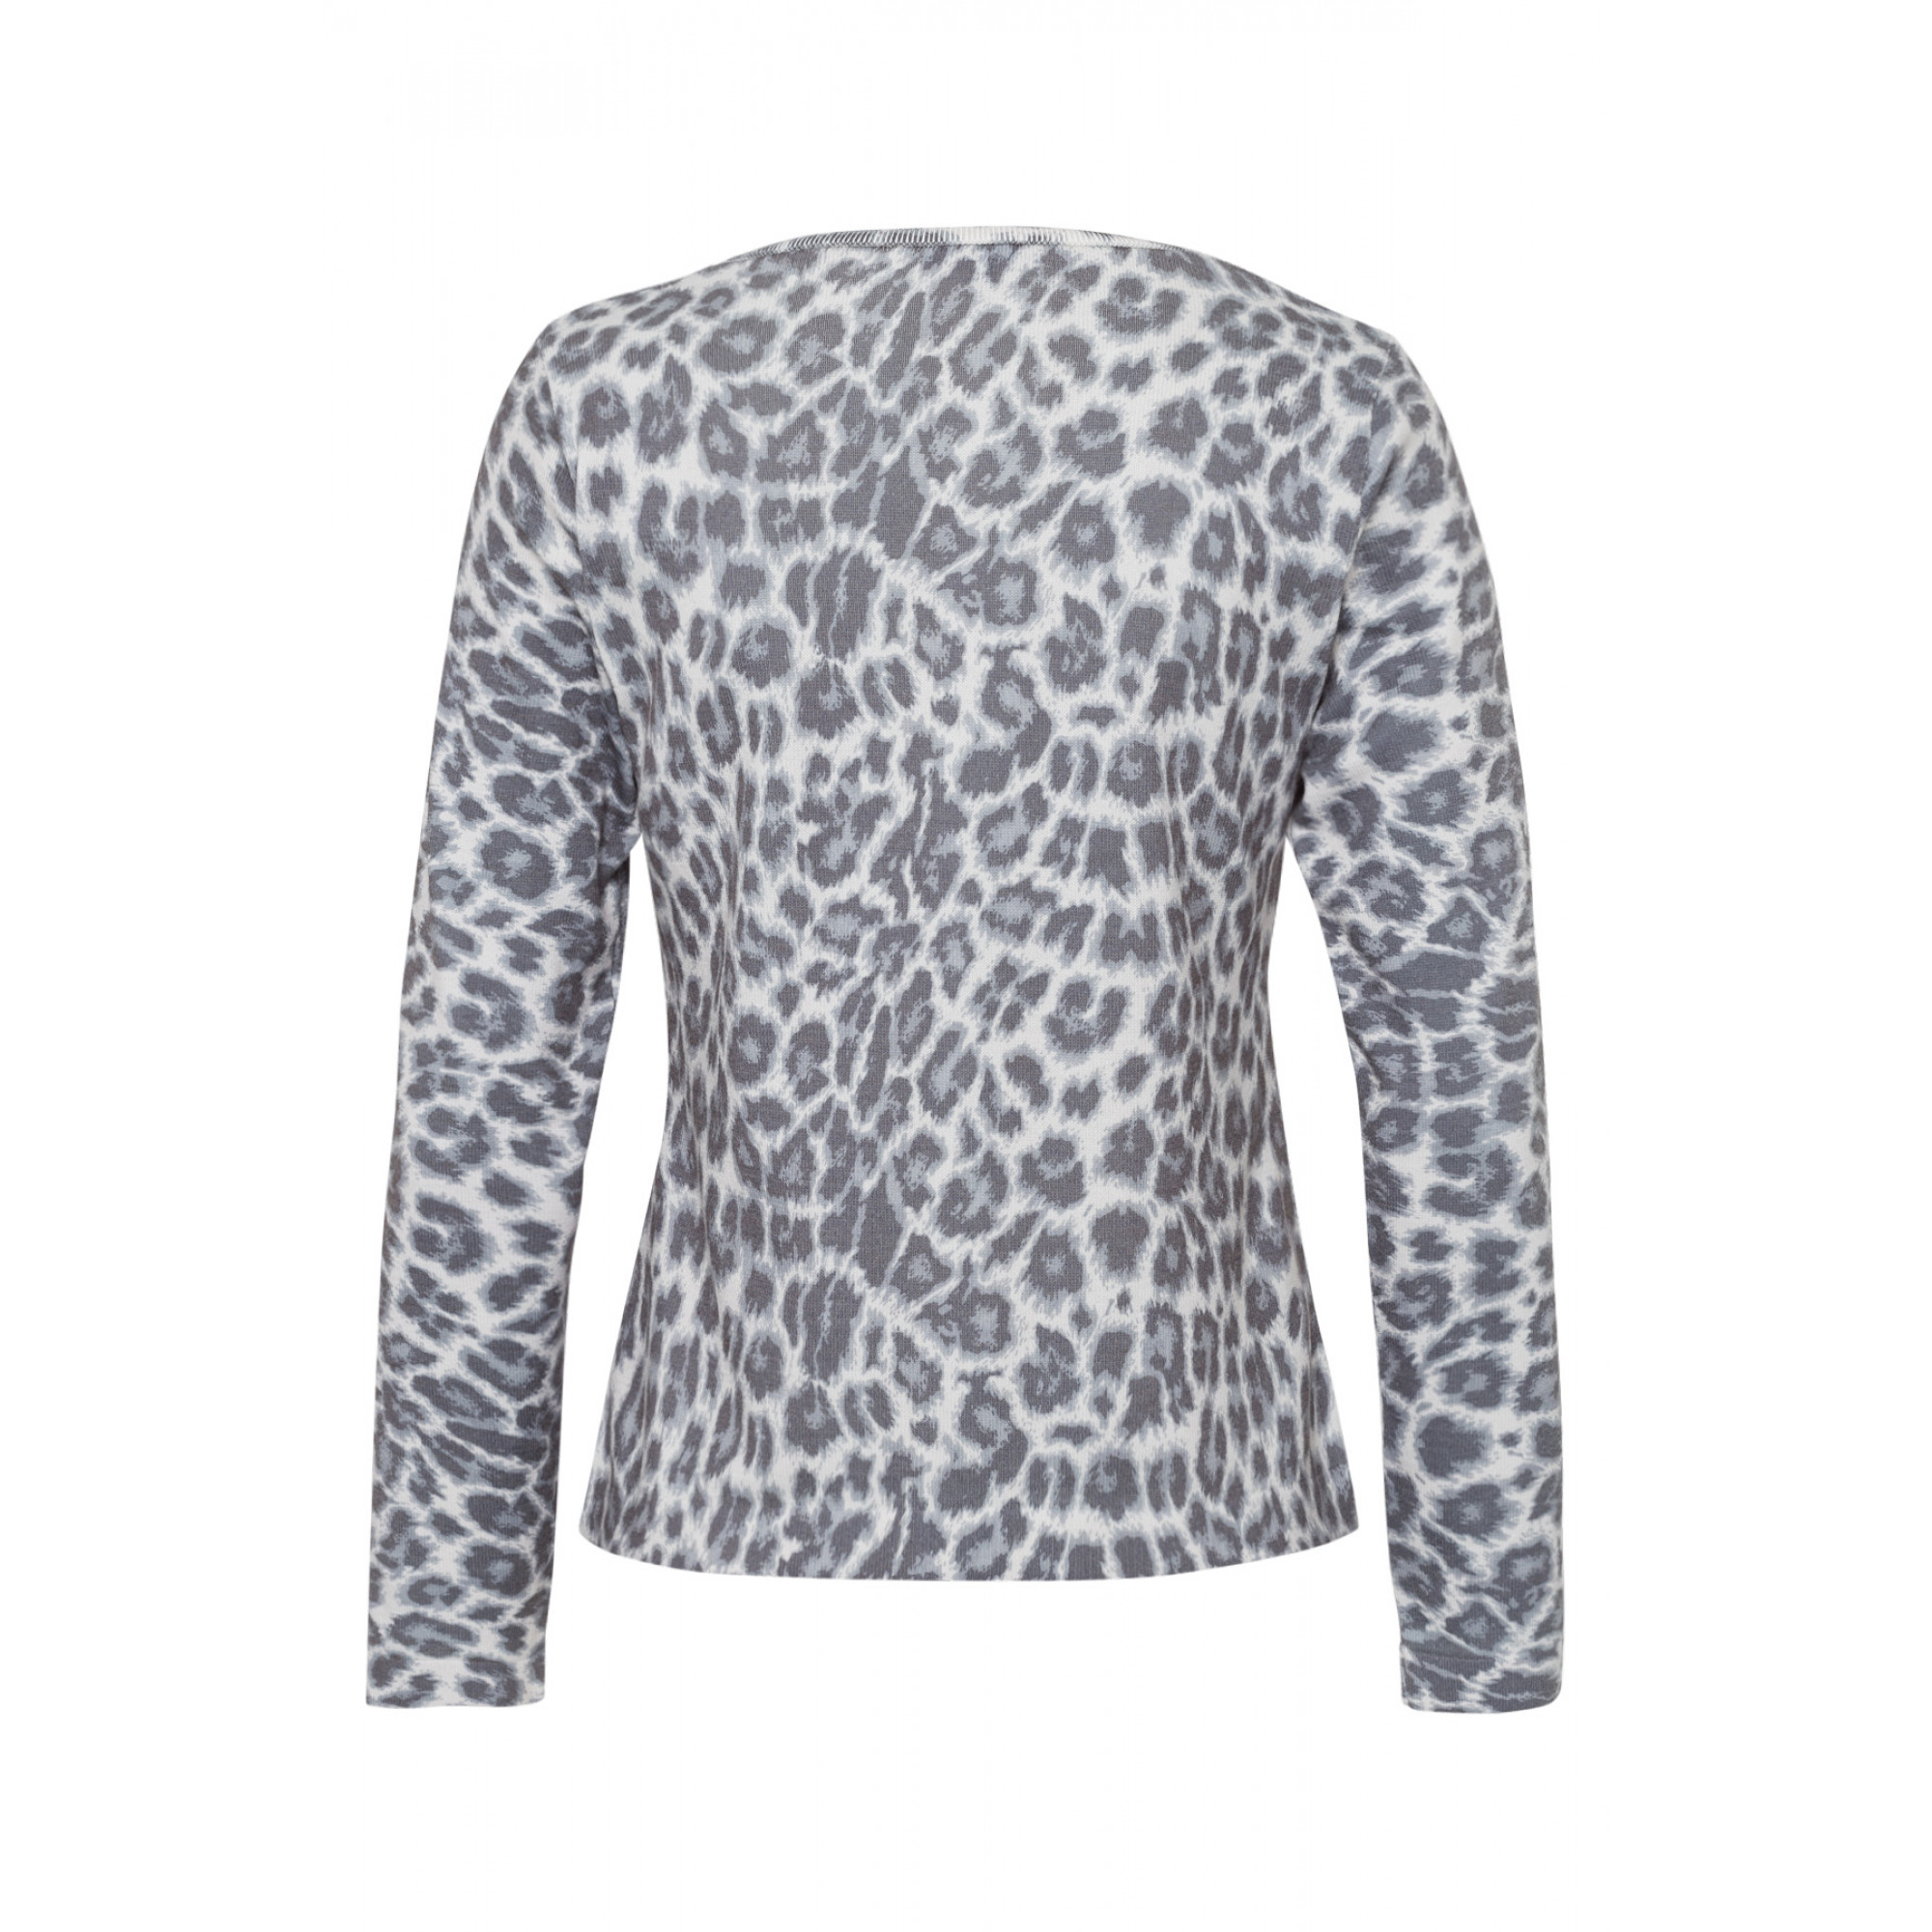 Cardigan, Leoprint 91951200-3041 2